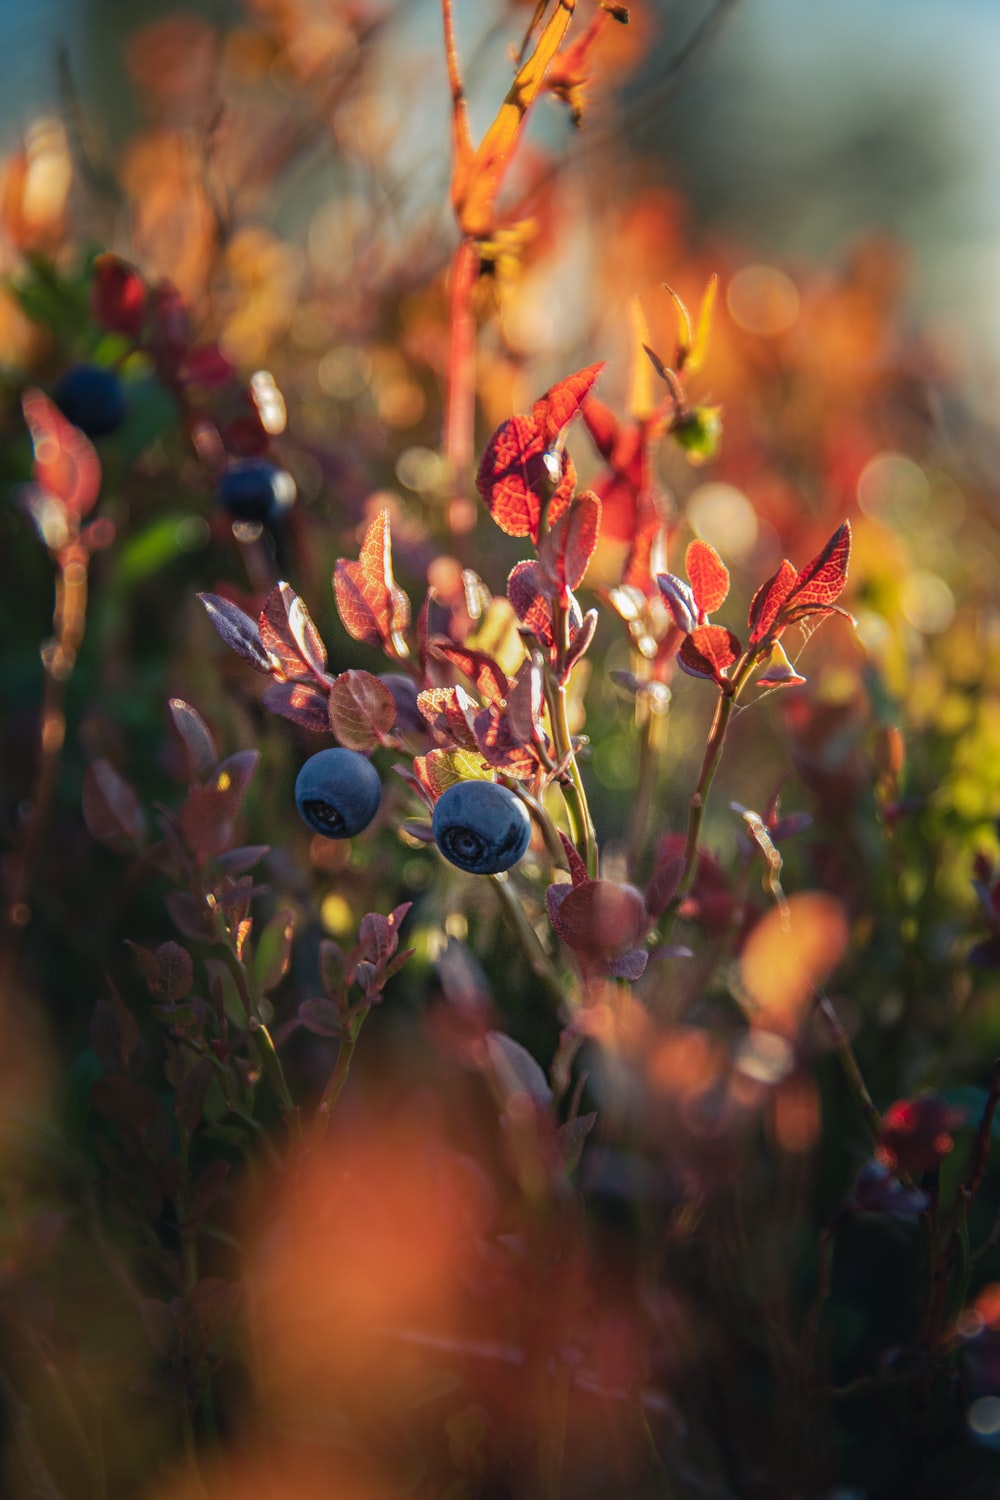 blue and red flower buds